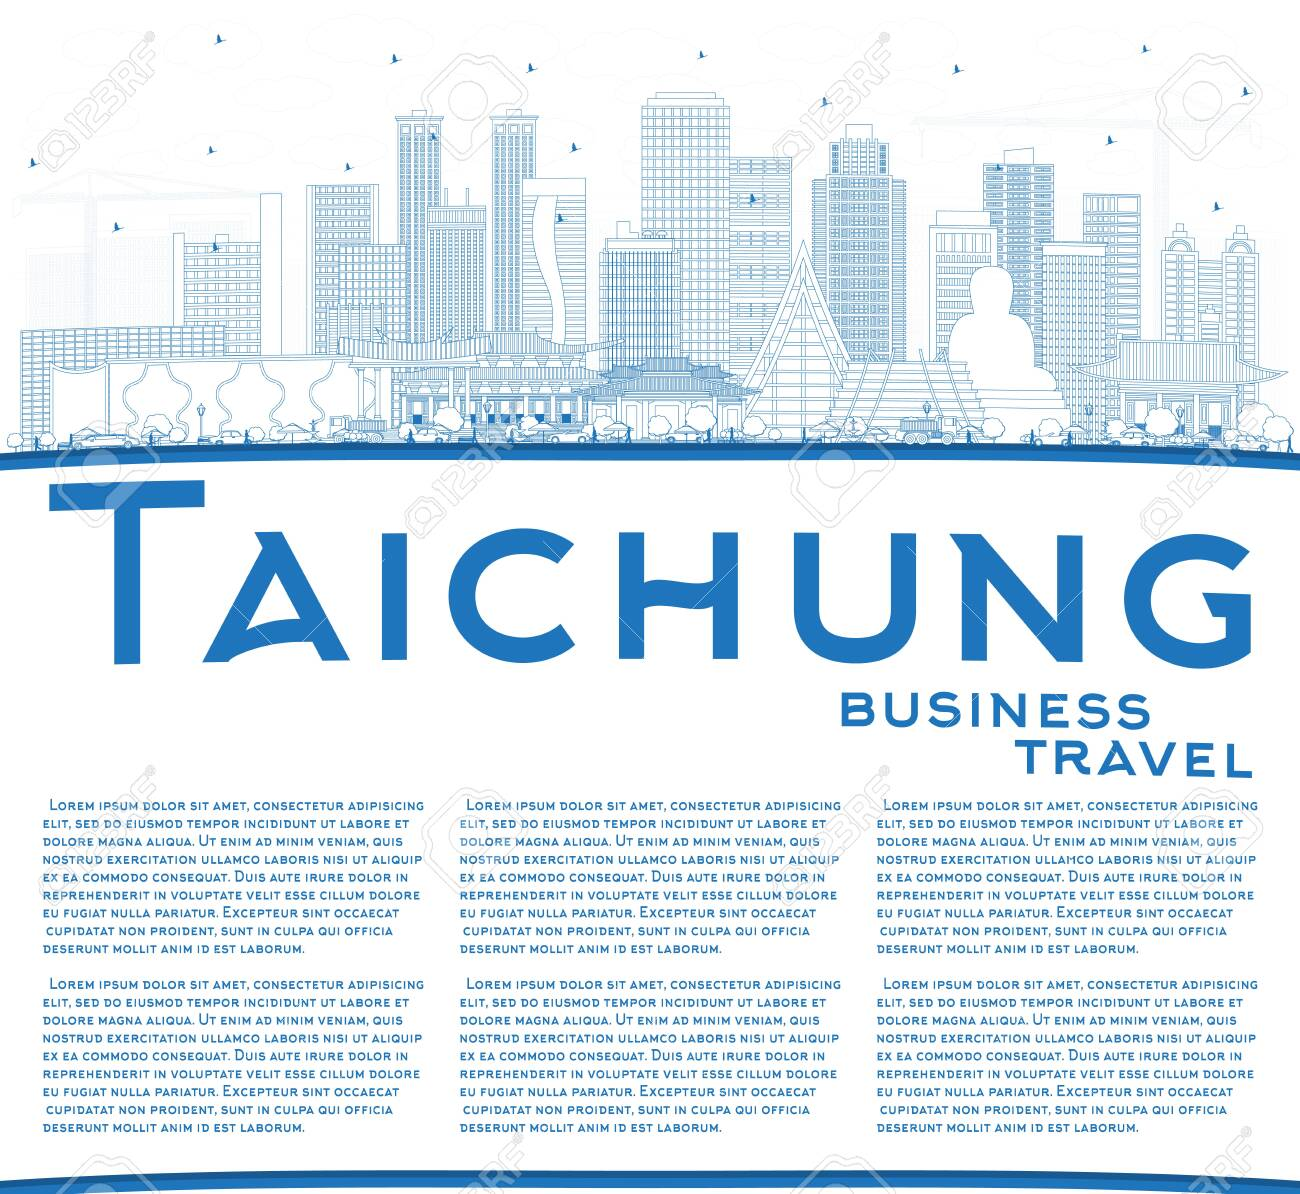 Outline Taichung Taiwan City Skyline with Blue Buildings and Copy Space. Vector Illustration. Business Travel and Tourism Concept with Historic Architecture. Taichung China Cityscape with Landmarks. - 124059777